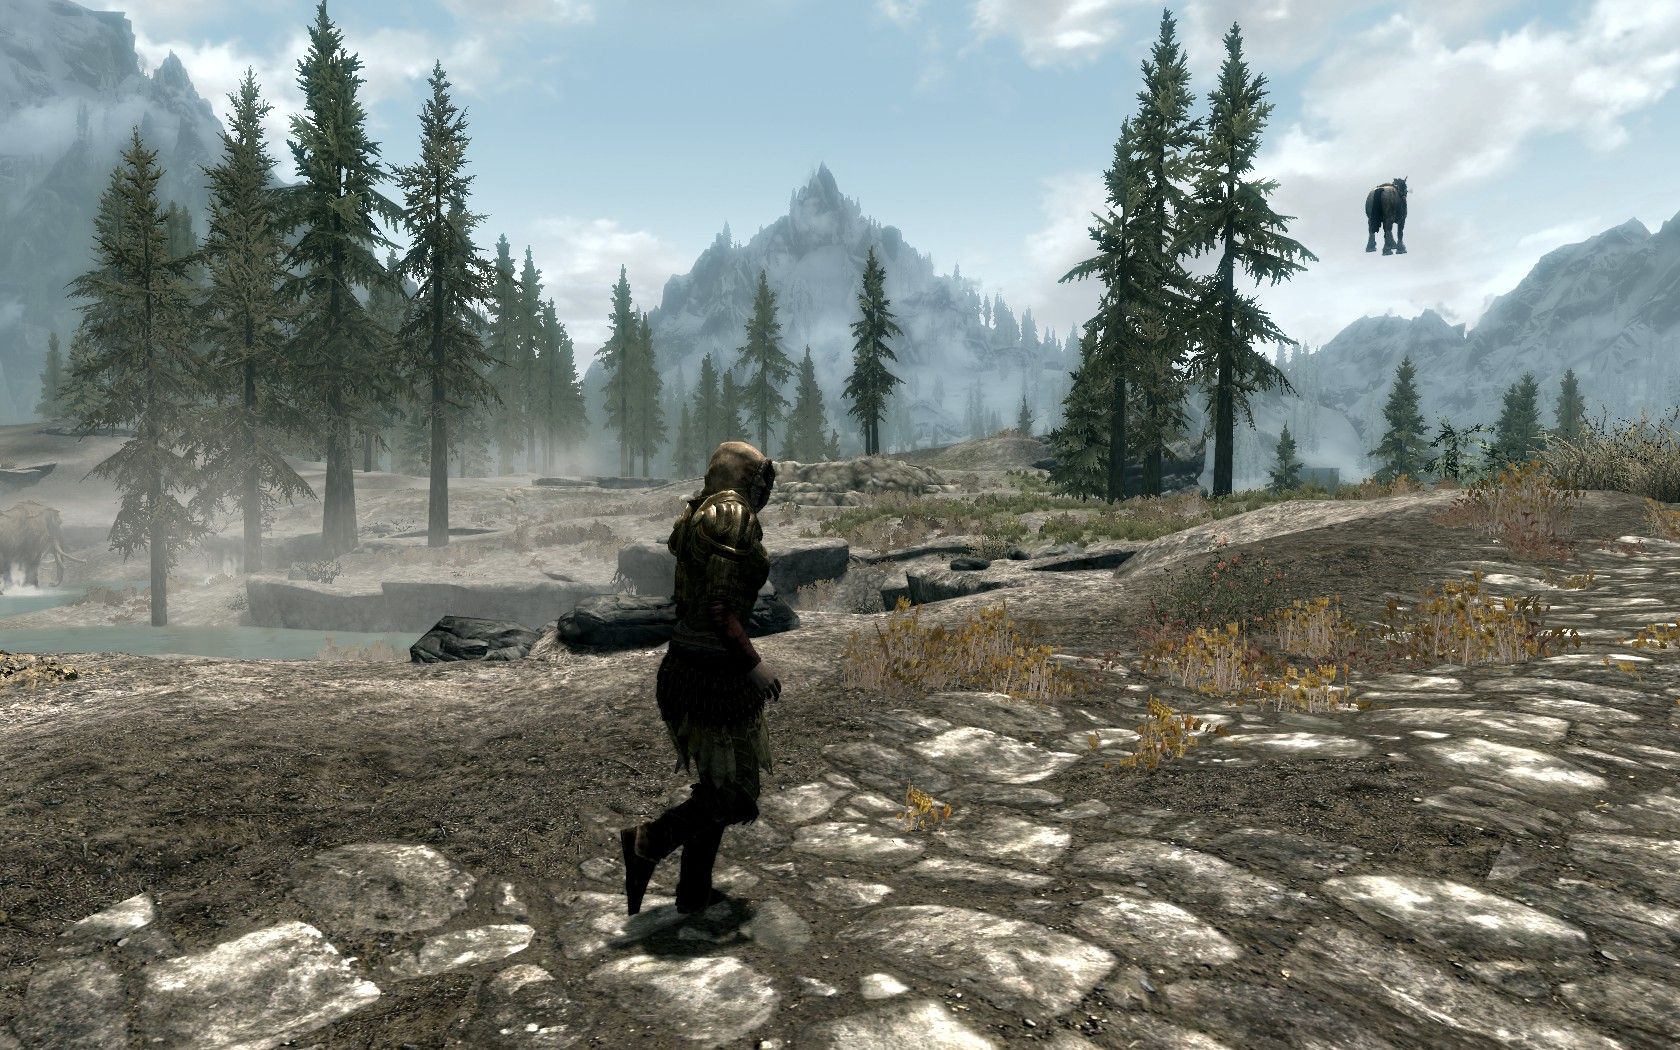 A screenshot from Skyrim shows a character chasing a horse flying off into the sky along a wilderness road.